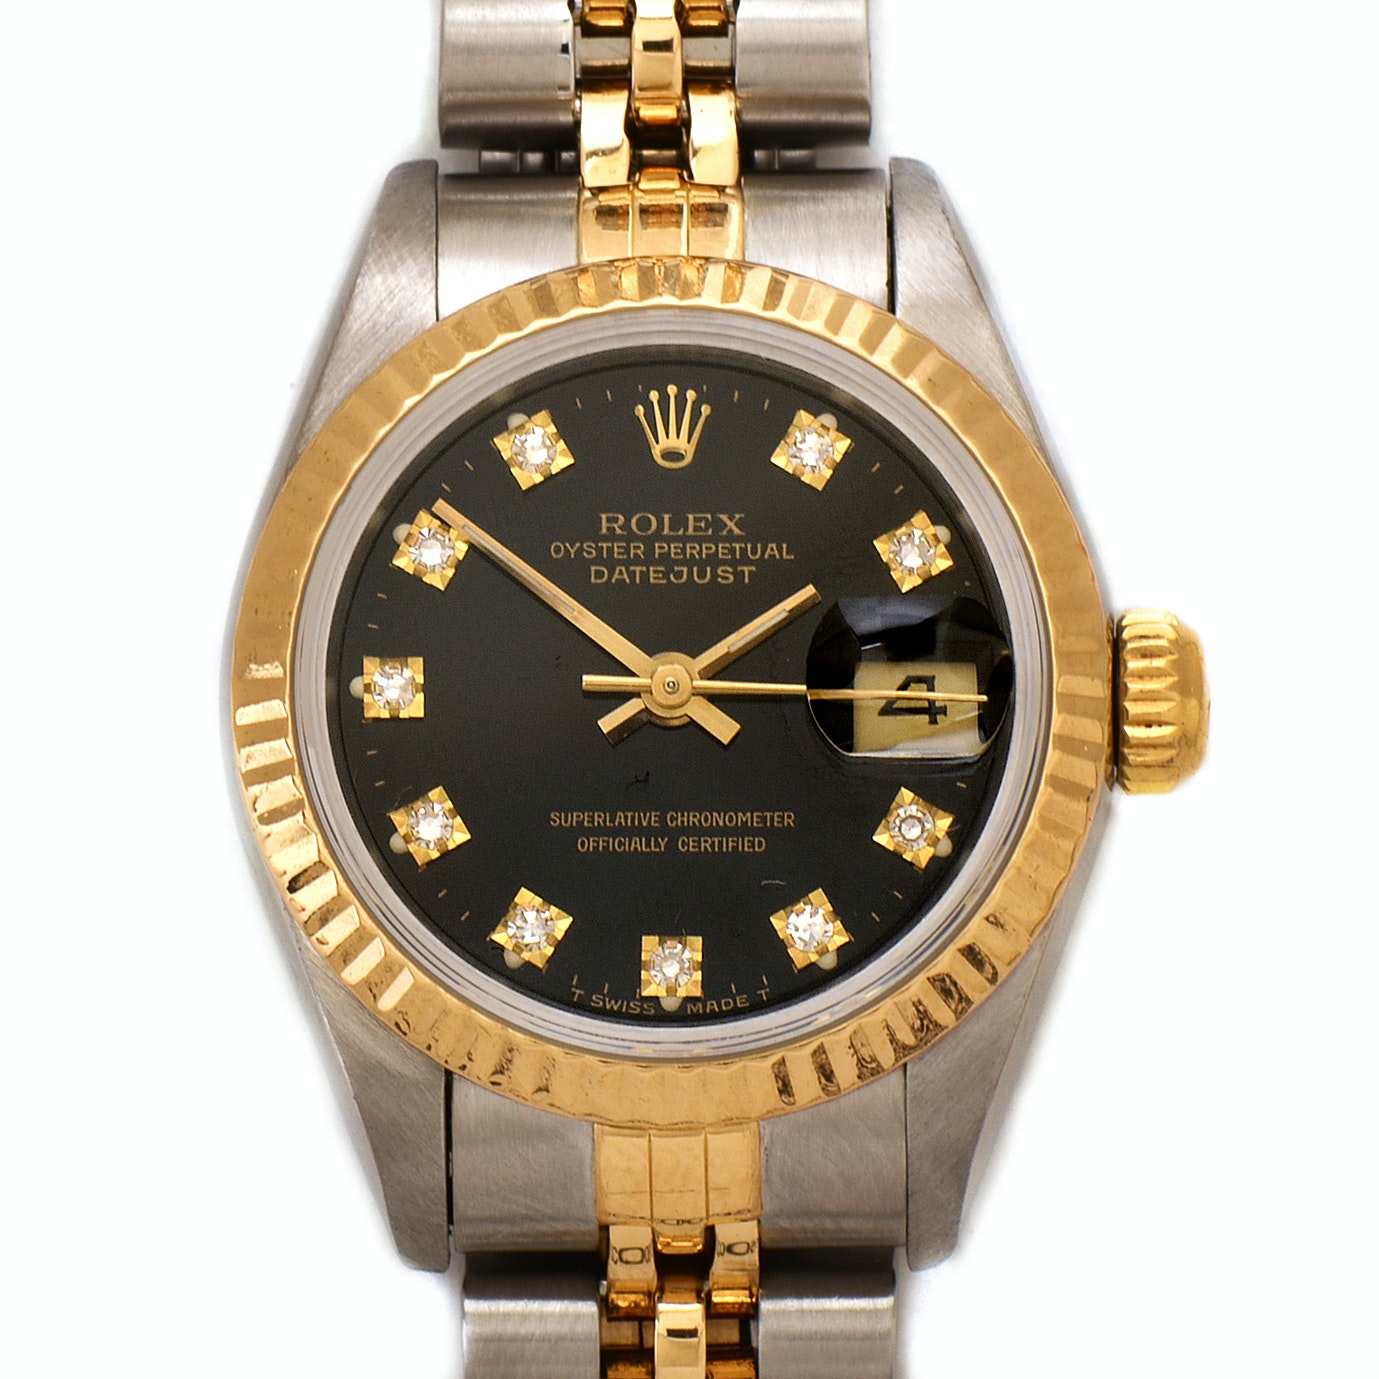 Rolex Datejust 18K Yellow Gold and Stainless Steel Factory Diamond Wristwatch